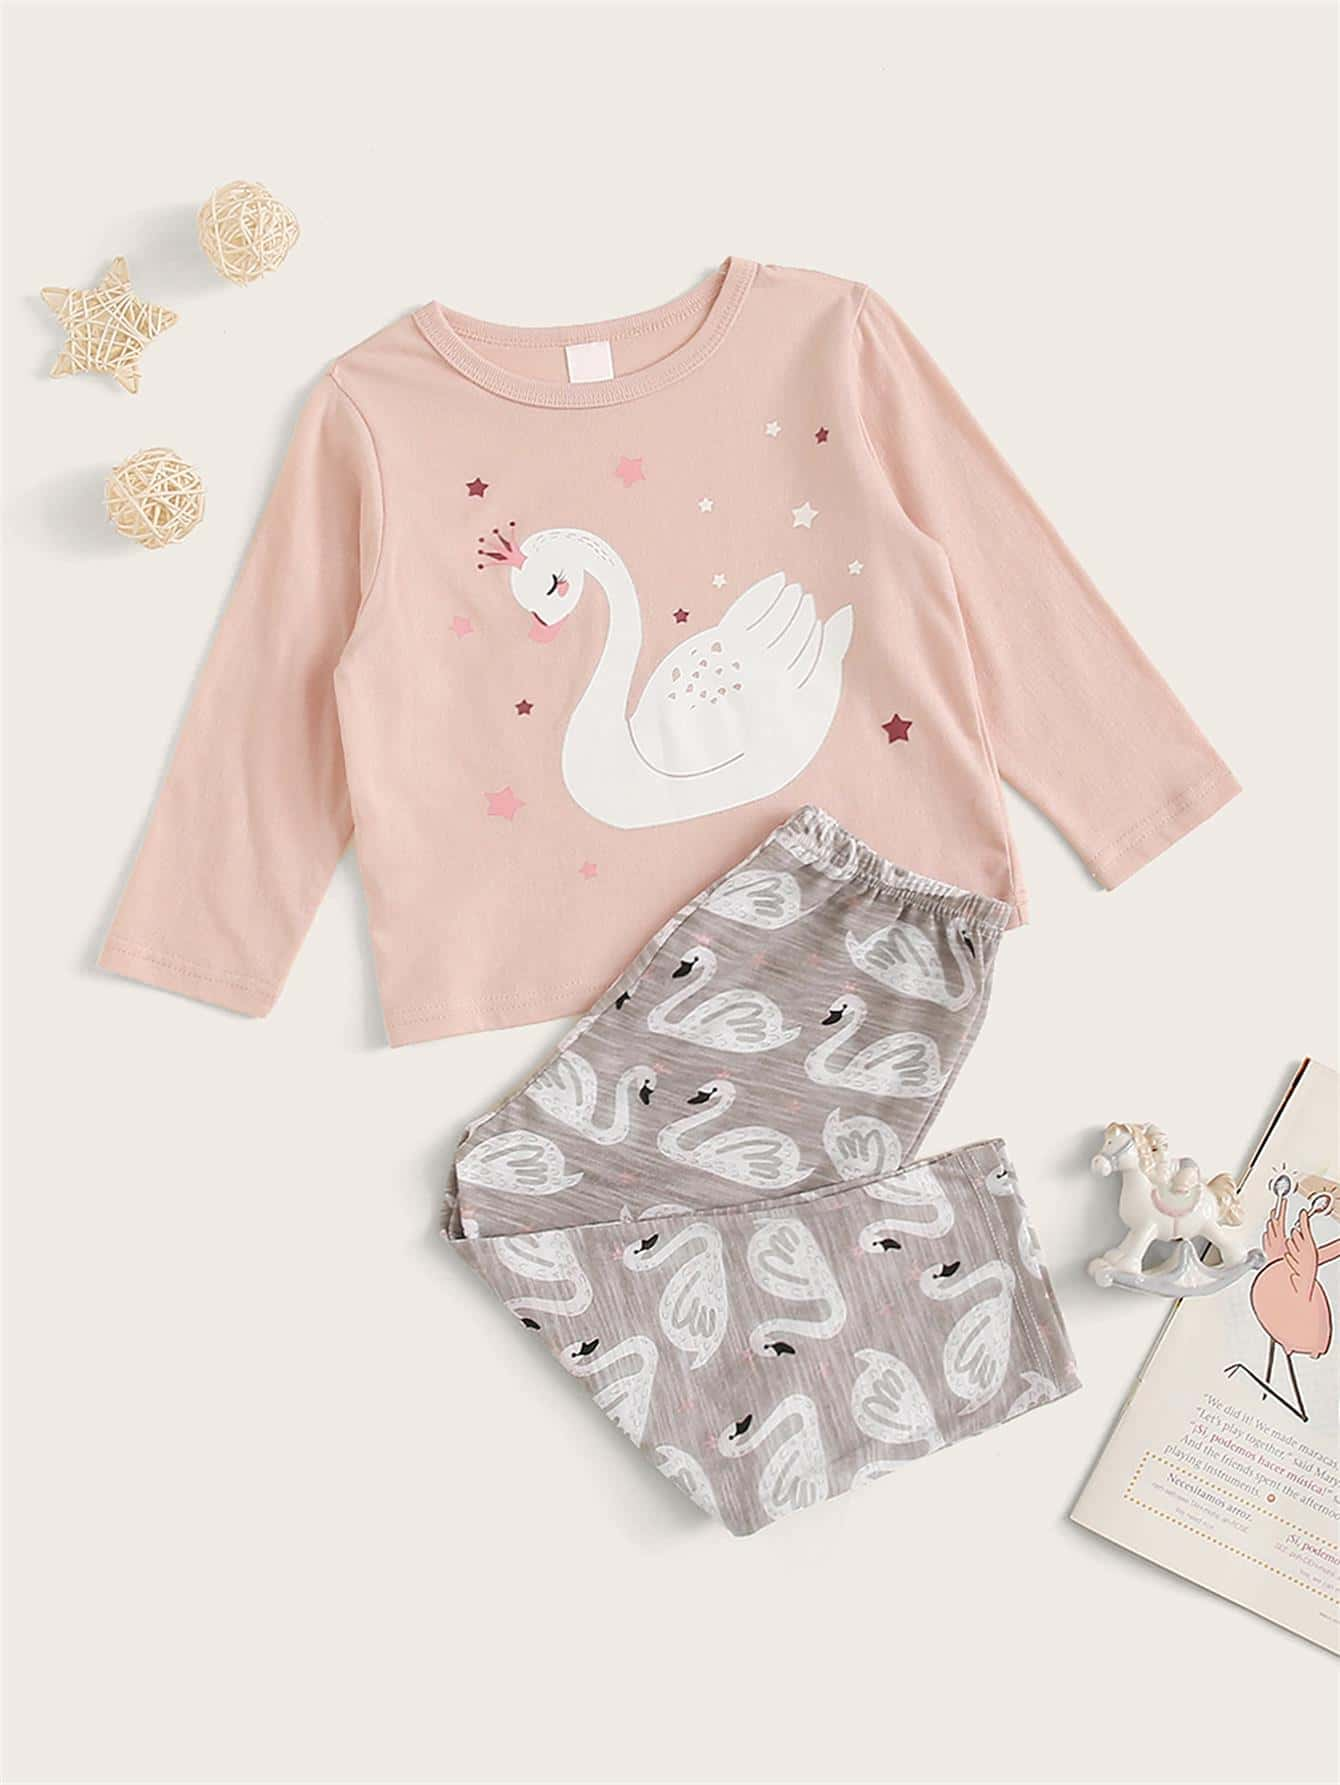 Britax Duo Twin Dolls Buggy Hot Pink Toddler Girl Swan Print Pj Set